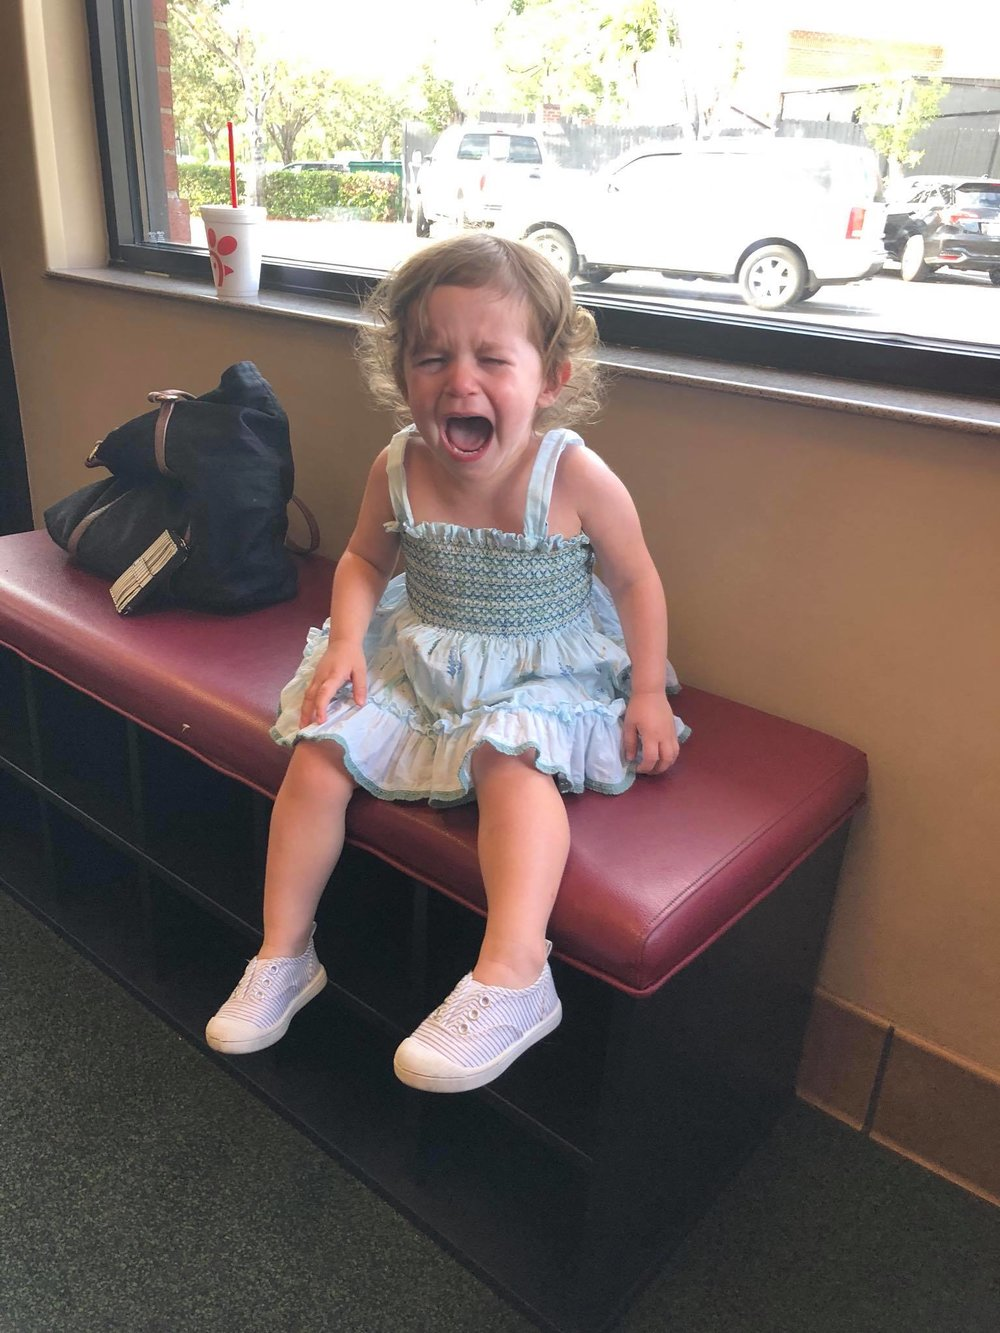 """""""I am 2. I am not terrible…I am frustrated. I am nervous, stressed out, overwhelmed, and confused. I need a hug.""""  From the diary of a 2-year-old:  Today I woke up and wanted to get dressed by myself but was told """"No, we don't have time, let me do it.""""  This made me sad.  I wanted to feed myself for breakfast but was told, """"No, you're too messy, let me do it for you.""""  This made me feel frustrated.  I wanted to walk to the car and get in on my own but was told, """"No, we need to get going, we don't have time. Let me do it.""""  This made me cry.  I wanted to get out of the car on my own but was told """"No, we don't have time, let me do it.""""  This made me want to run away.  Later I wanted to play with blocks but was told """"no, not like that, like this…""""  I decided I didn't want to play with blocks anymore. I wanted to play with a doll that someone else had, so I took it. I was told """"No, don't do that! You have to share.""""  I'm not sure what I did, but it made me sad. So I cried. I wanted a hug but was told """"No, you're fine, go play"""".  I'm being told it's time to pick up. I know this because someone keeps saying, """"Go pick up your toys.""""  I am not sure what to do, I am waiting for someone to show me.  """"What are you doing? Why are you just standing there? Pick up your toys, now!""""  I was not allowed to dress myself or move my own body to get to where I needed to go, but now I am being asked to pick things up.  I'm not sure what to do. Is someone supposed to show me how to do this? Where do I start? Where do these things go? I am hearing a lot of words but I do not understand what is being asked of me. I am scared and do not move.  I lay down on the floor and cry.  When it was time to eat I wanted to get my own food but was told """"no, you're too little. Let me do it.""""  This made me feel small. I tried to eat the food in front of me but I did not put it there and someone keeps saying """"Here, try this, eat this…"""" and putting things in my face.  I didn't want to eat anymore. This made """